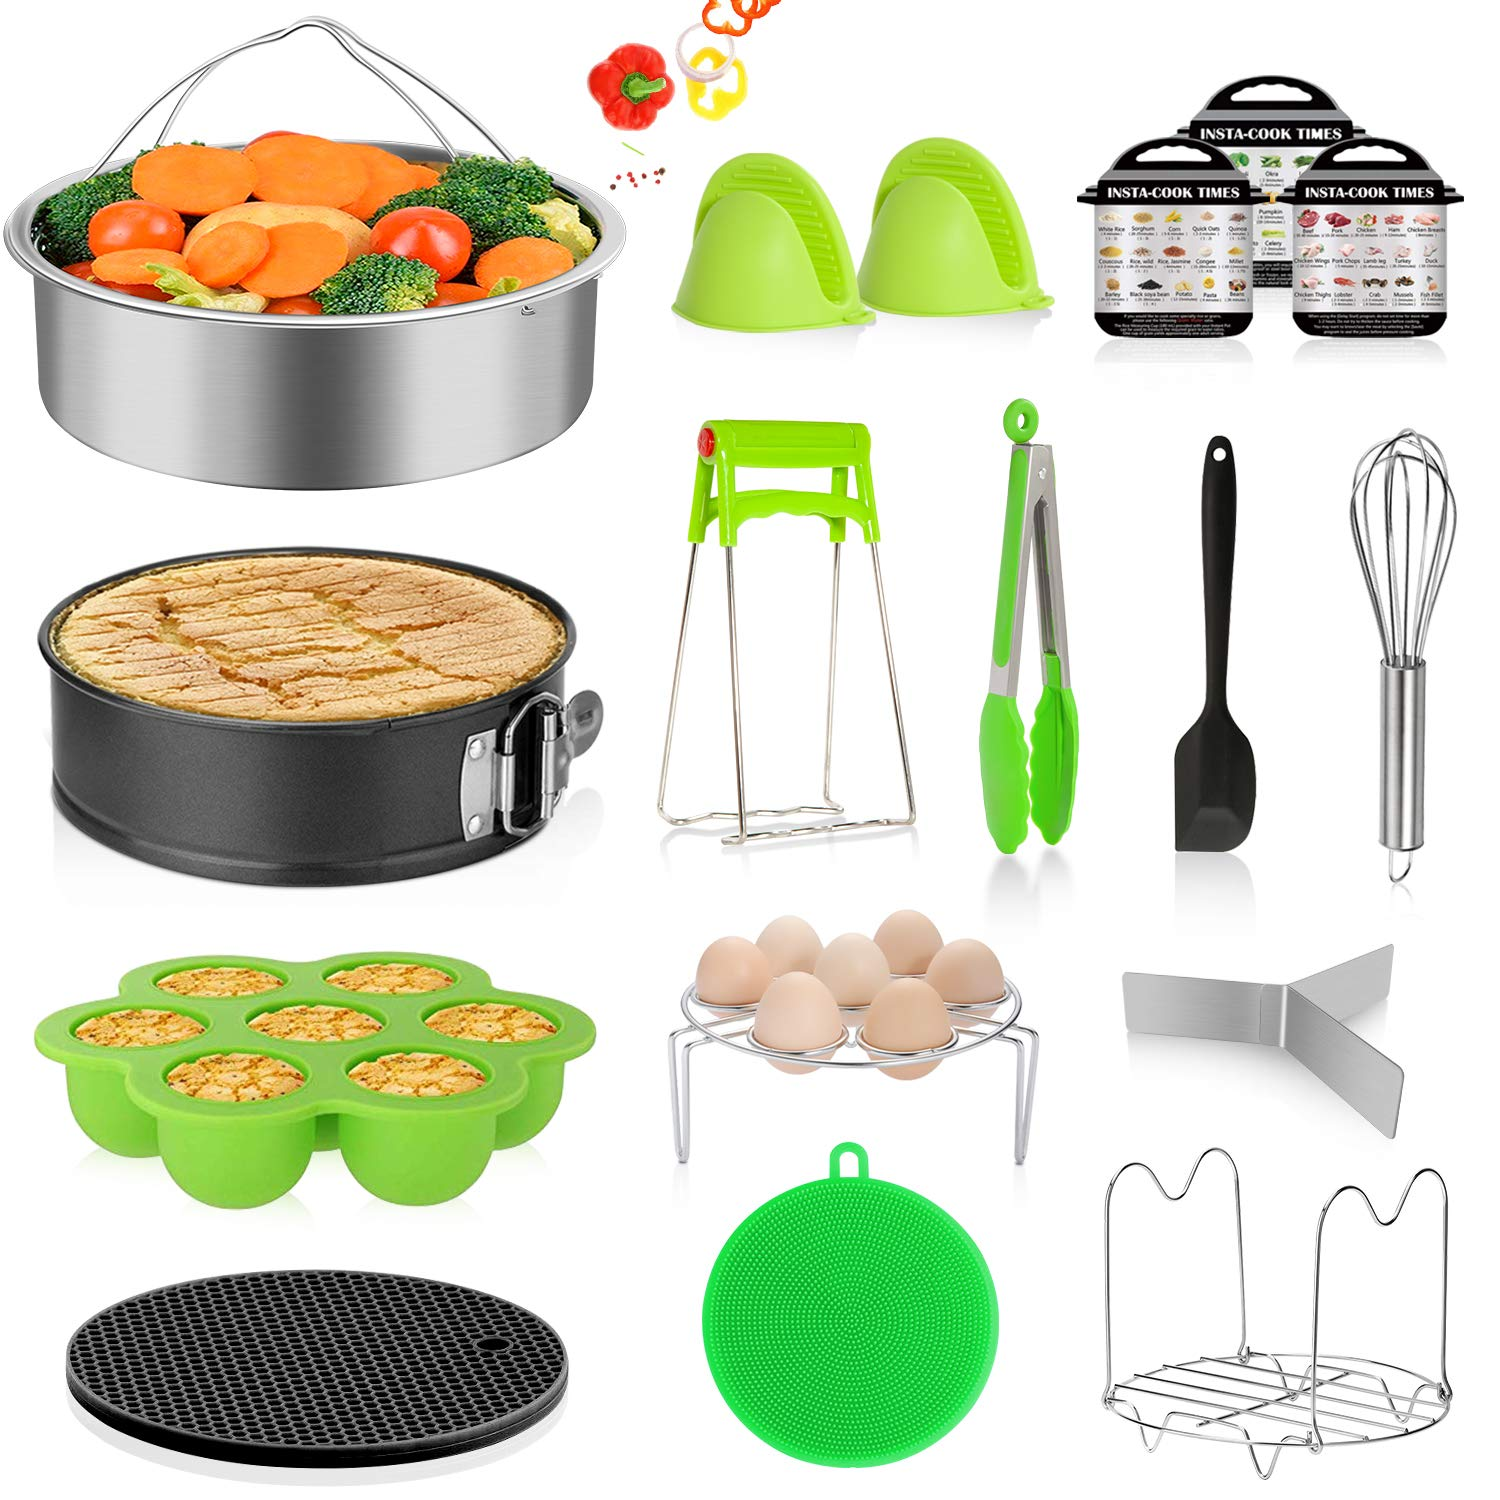 MIBOTE 17pcs Pressure Cooker Accessories Set fits Instant Pot 5,6,8 Qt, Steamer Baskets, Springform Pan, Egg Steamer Rack, Egg Bites Mold, Kitchen Tong, Silicone Pad, Oven Mitts, Cheat Sheet Magnet by MIBOTE